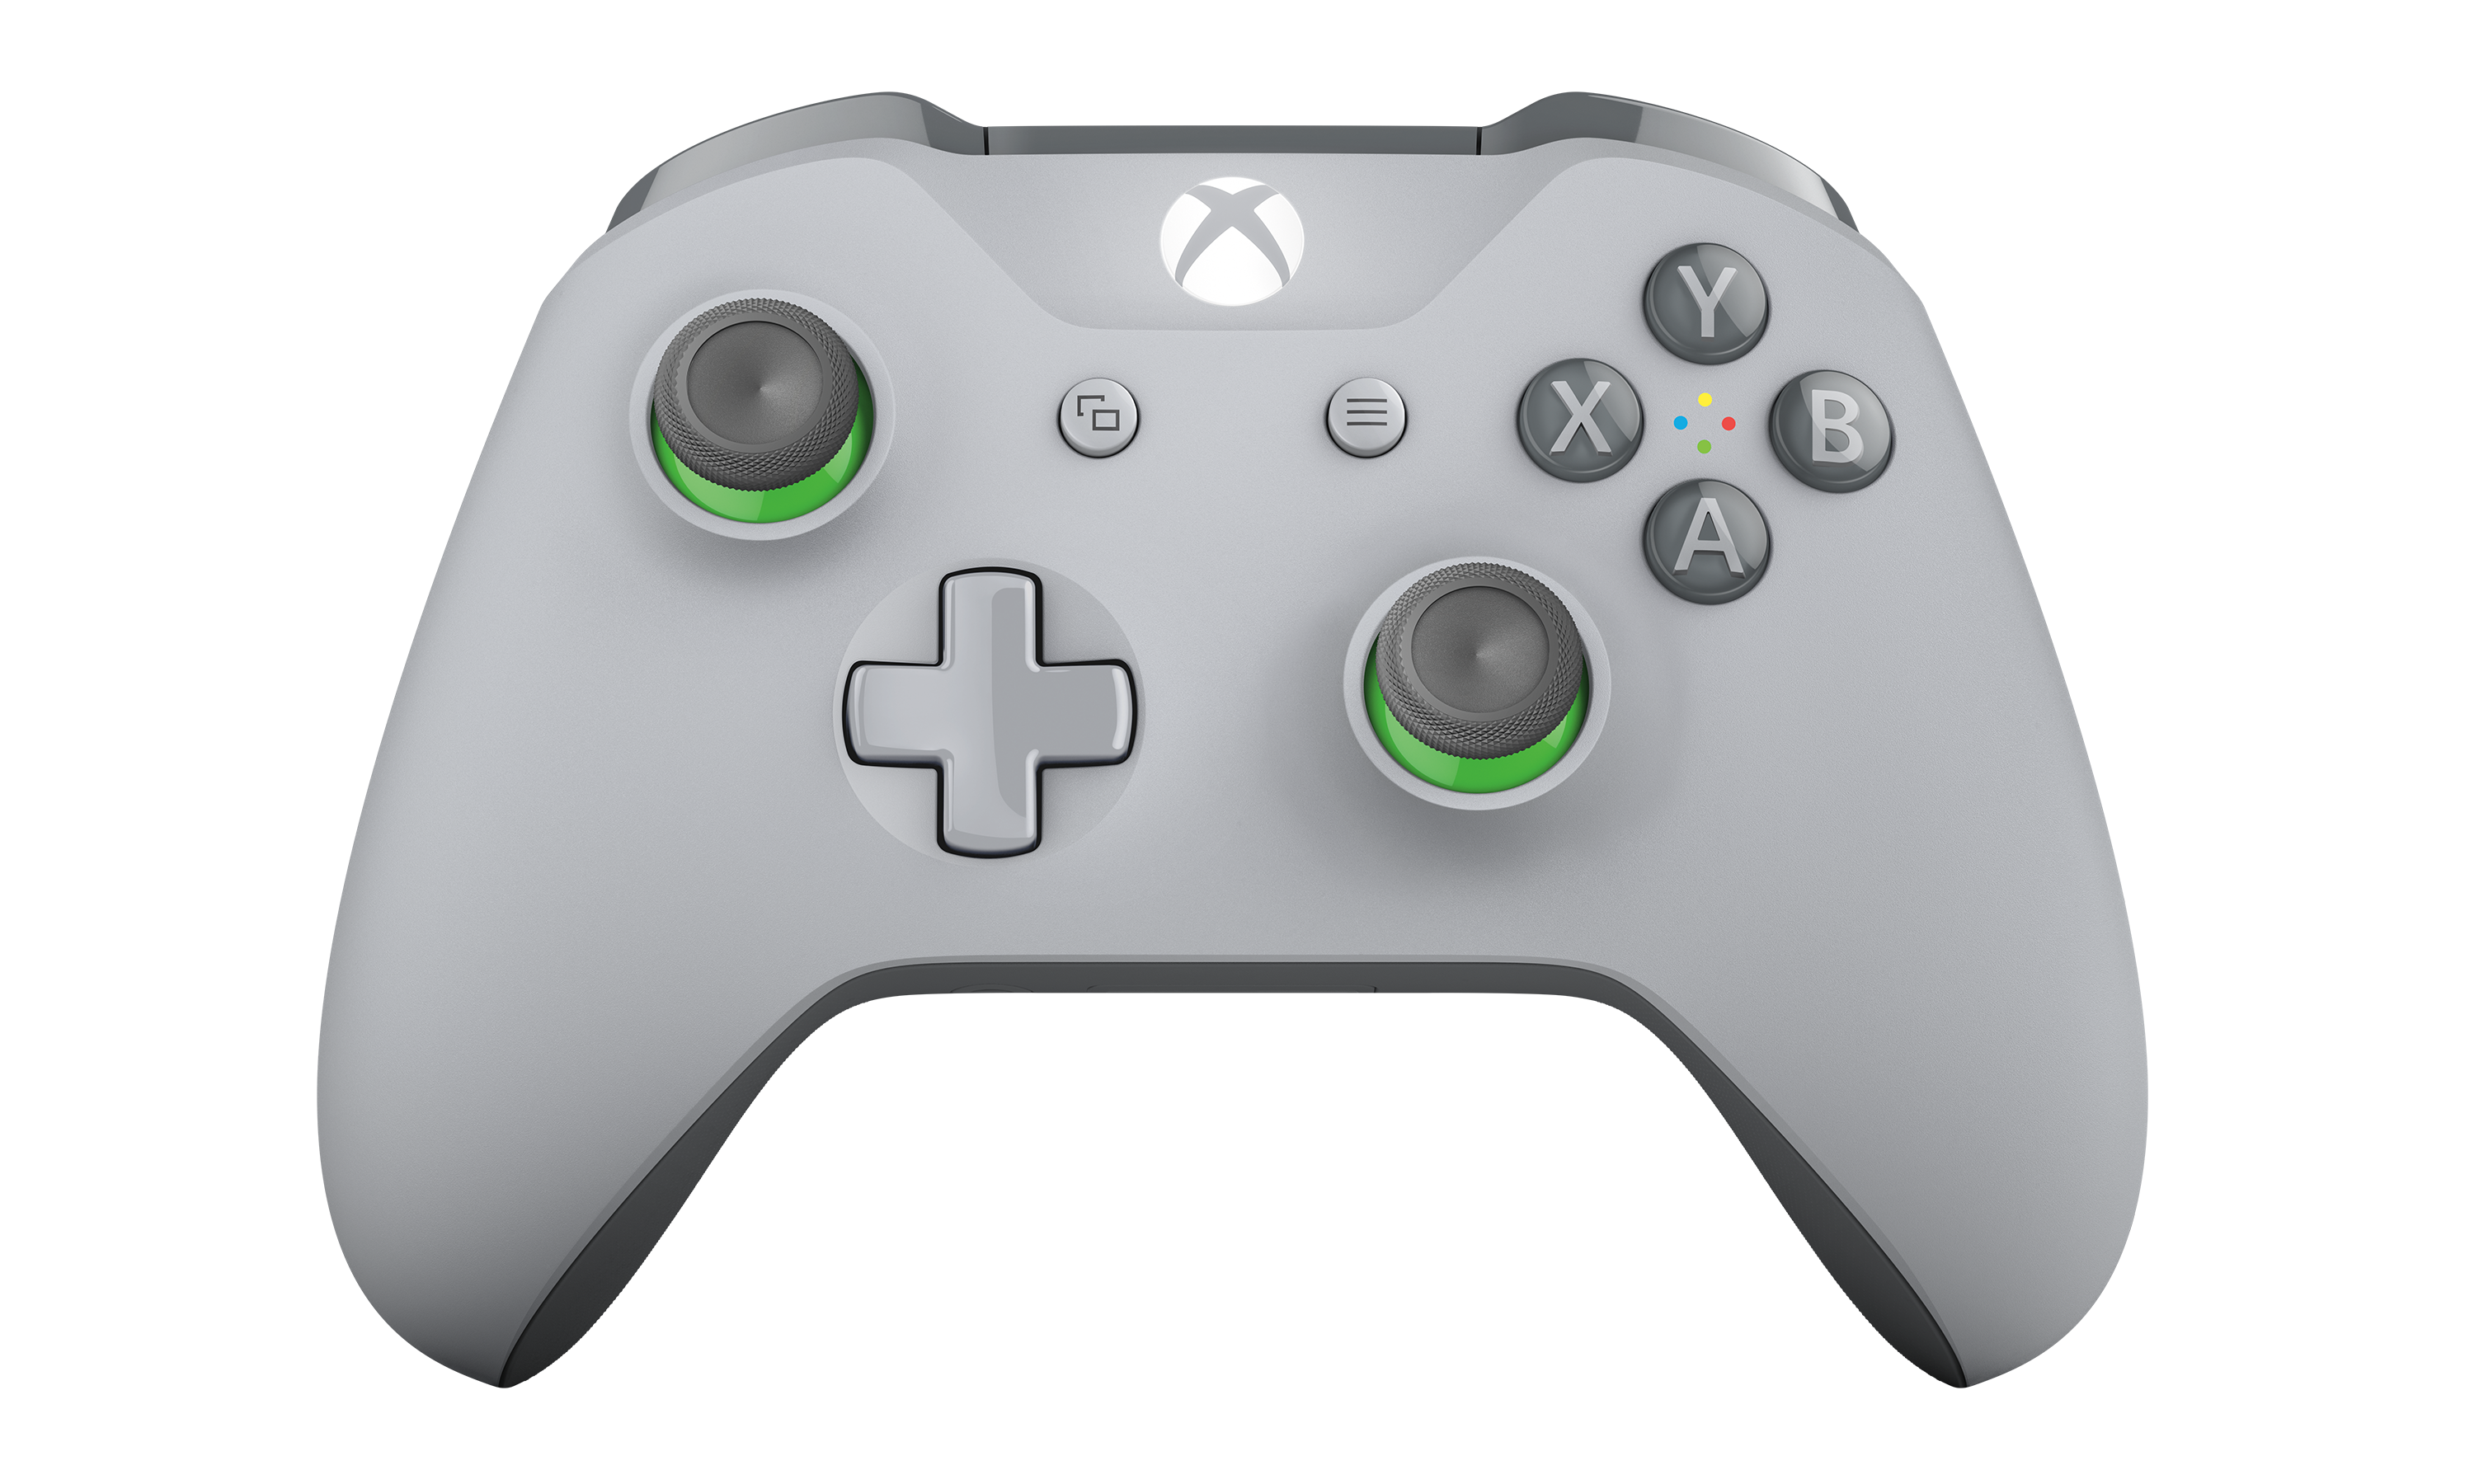 Xbox Wireless Controller - Gray and Green